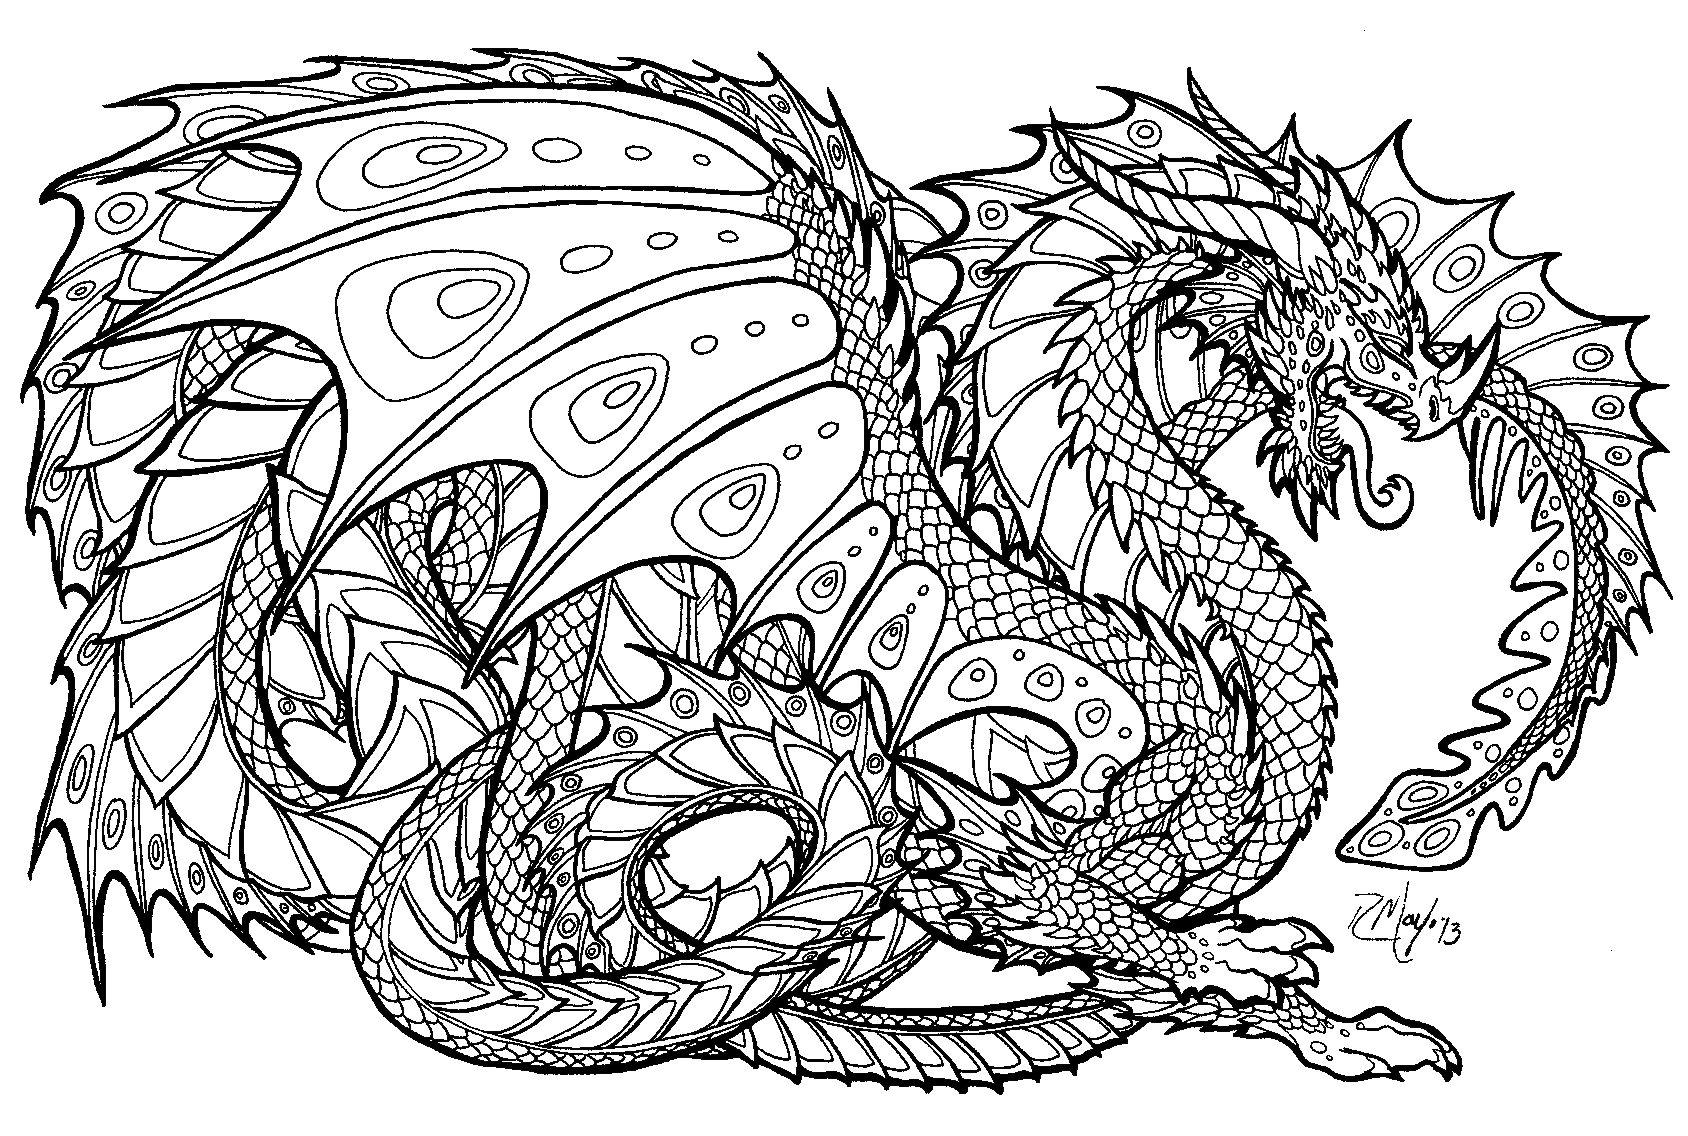 detailed coloring pictures detailed coloring pages only coloring pages pictures detailed coloring